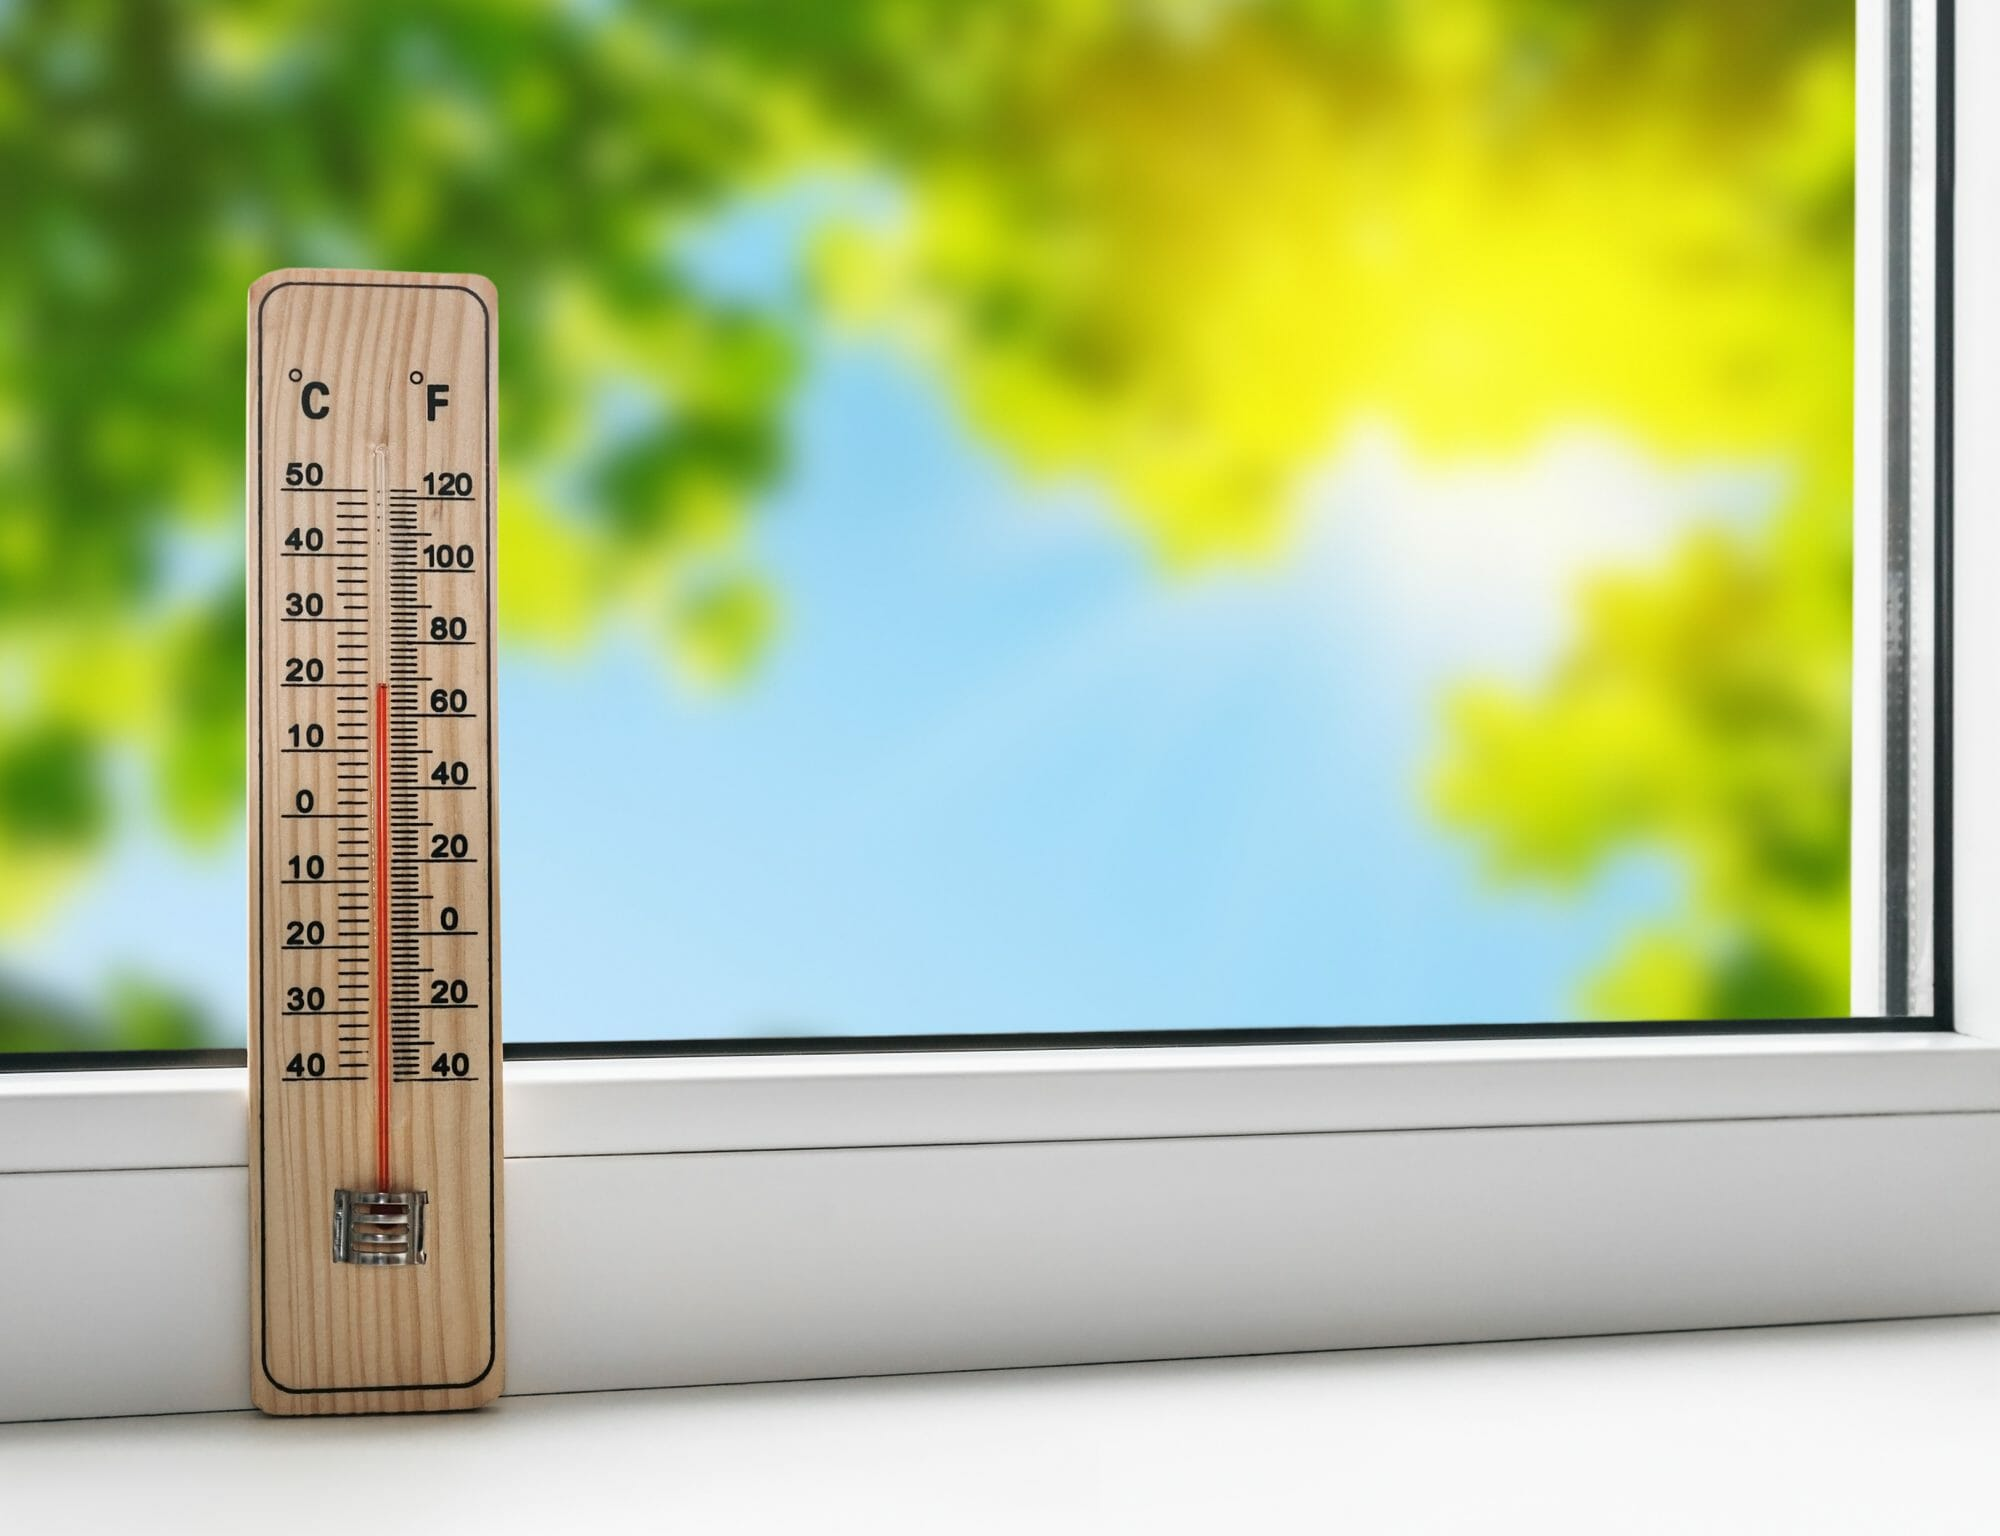 thermometer on the windowsill